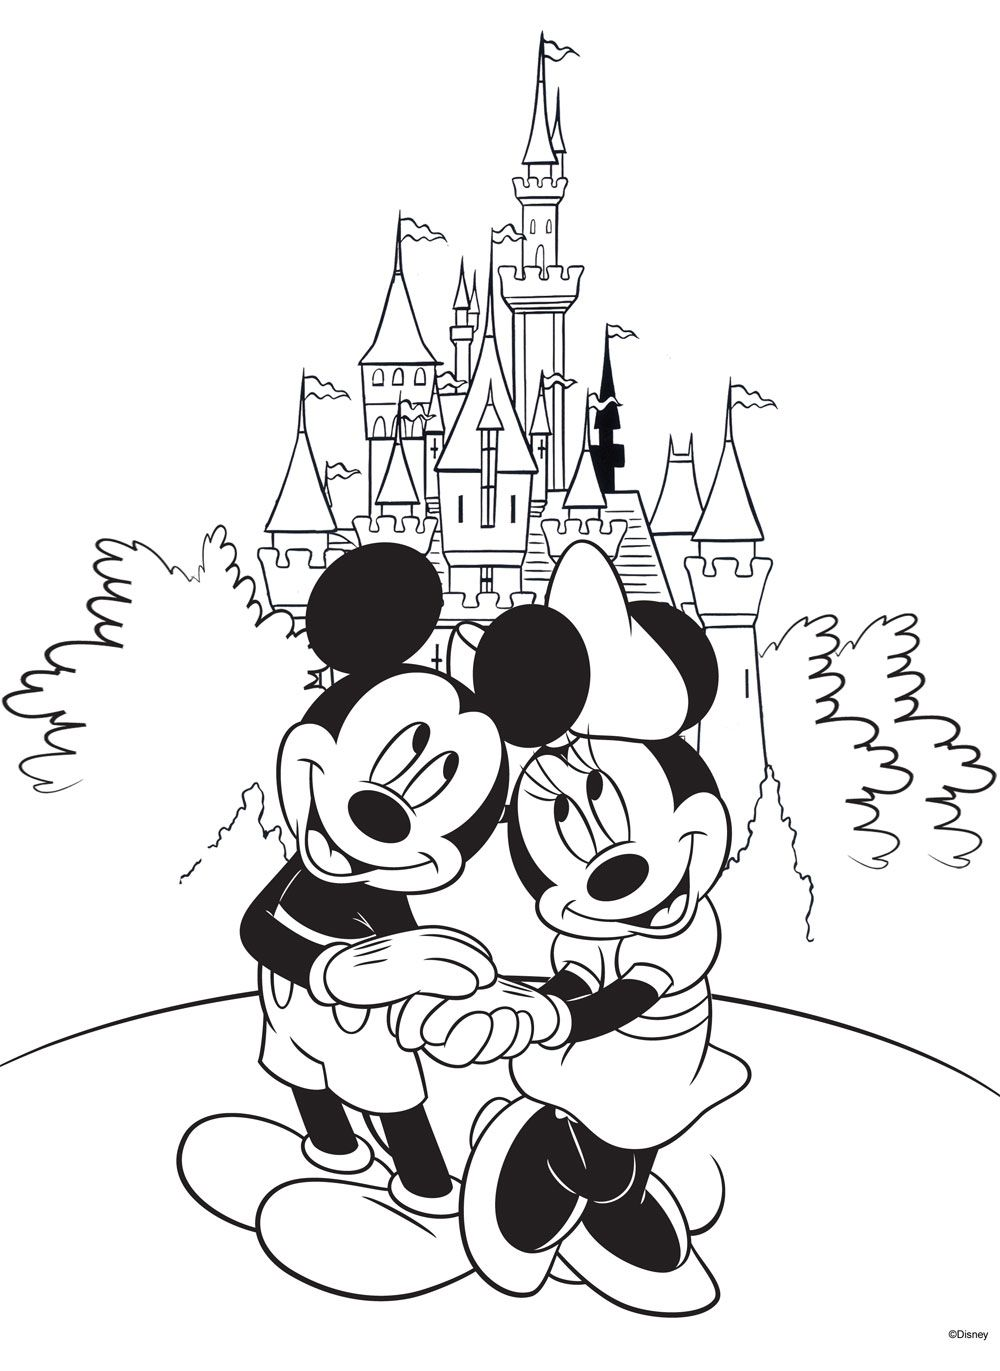 Free Disney Coloring Pages | Free, Coloring books and Adult coloring